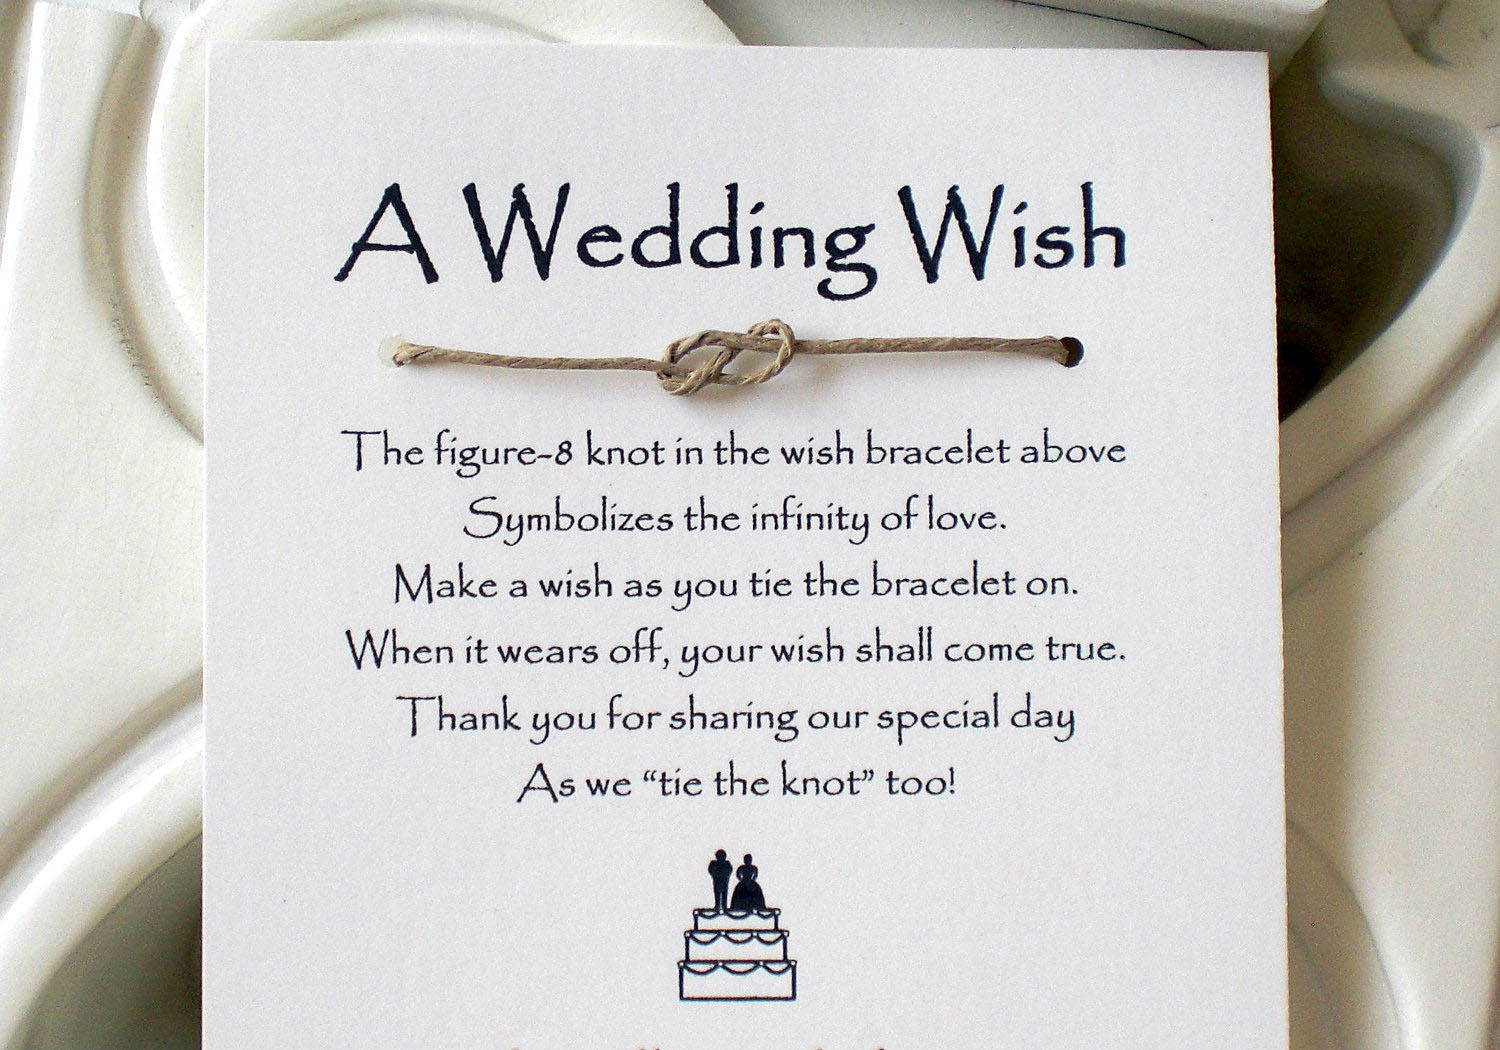 Love Marriage Quotes Love Marriage Quotes For Wedding Cards  Good Morning Wishesgood